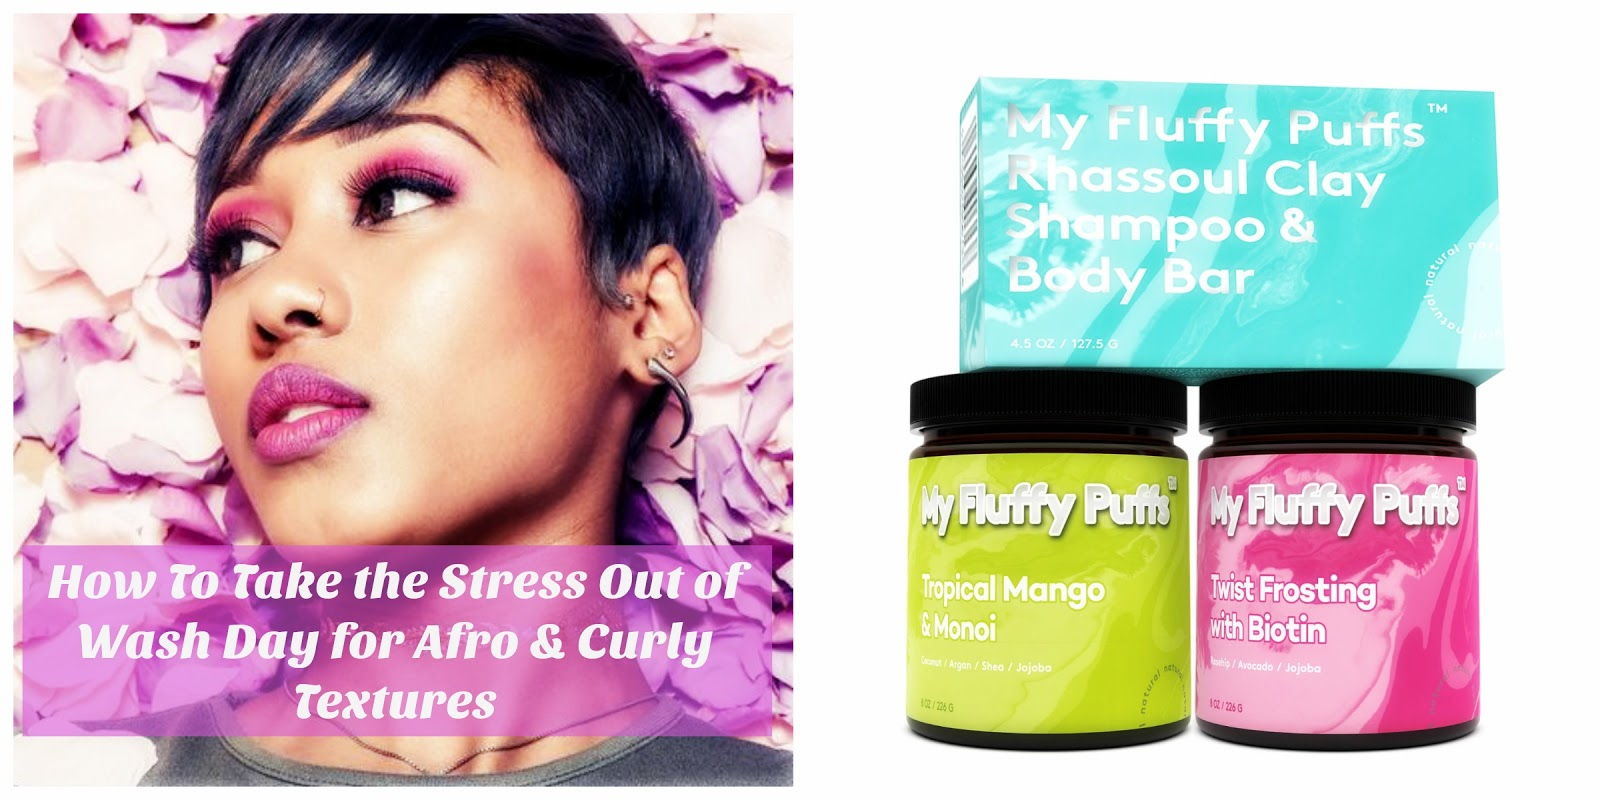 How To Take the Stress Out of Wash Day for Afro & Curly Textures | My Fluffy Puffs Giveaway!